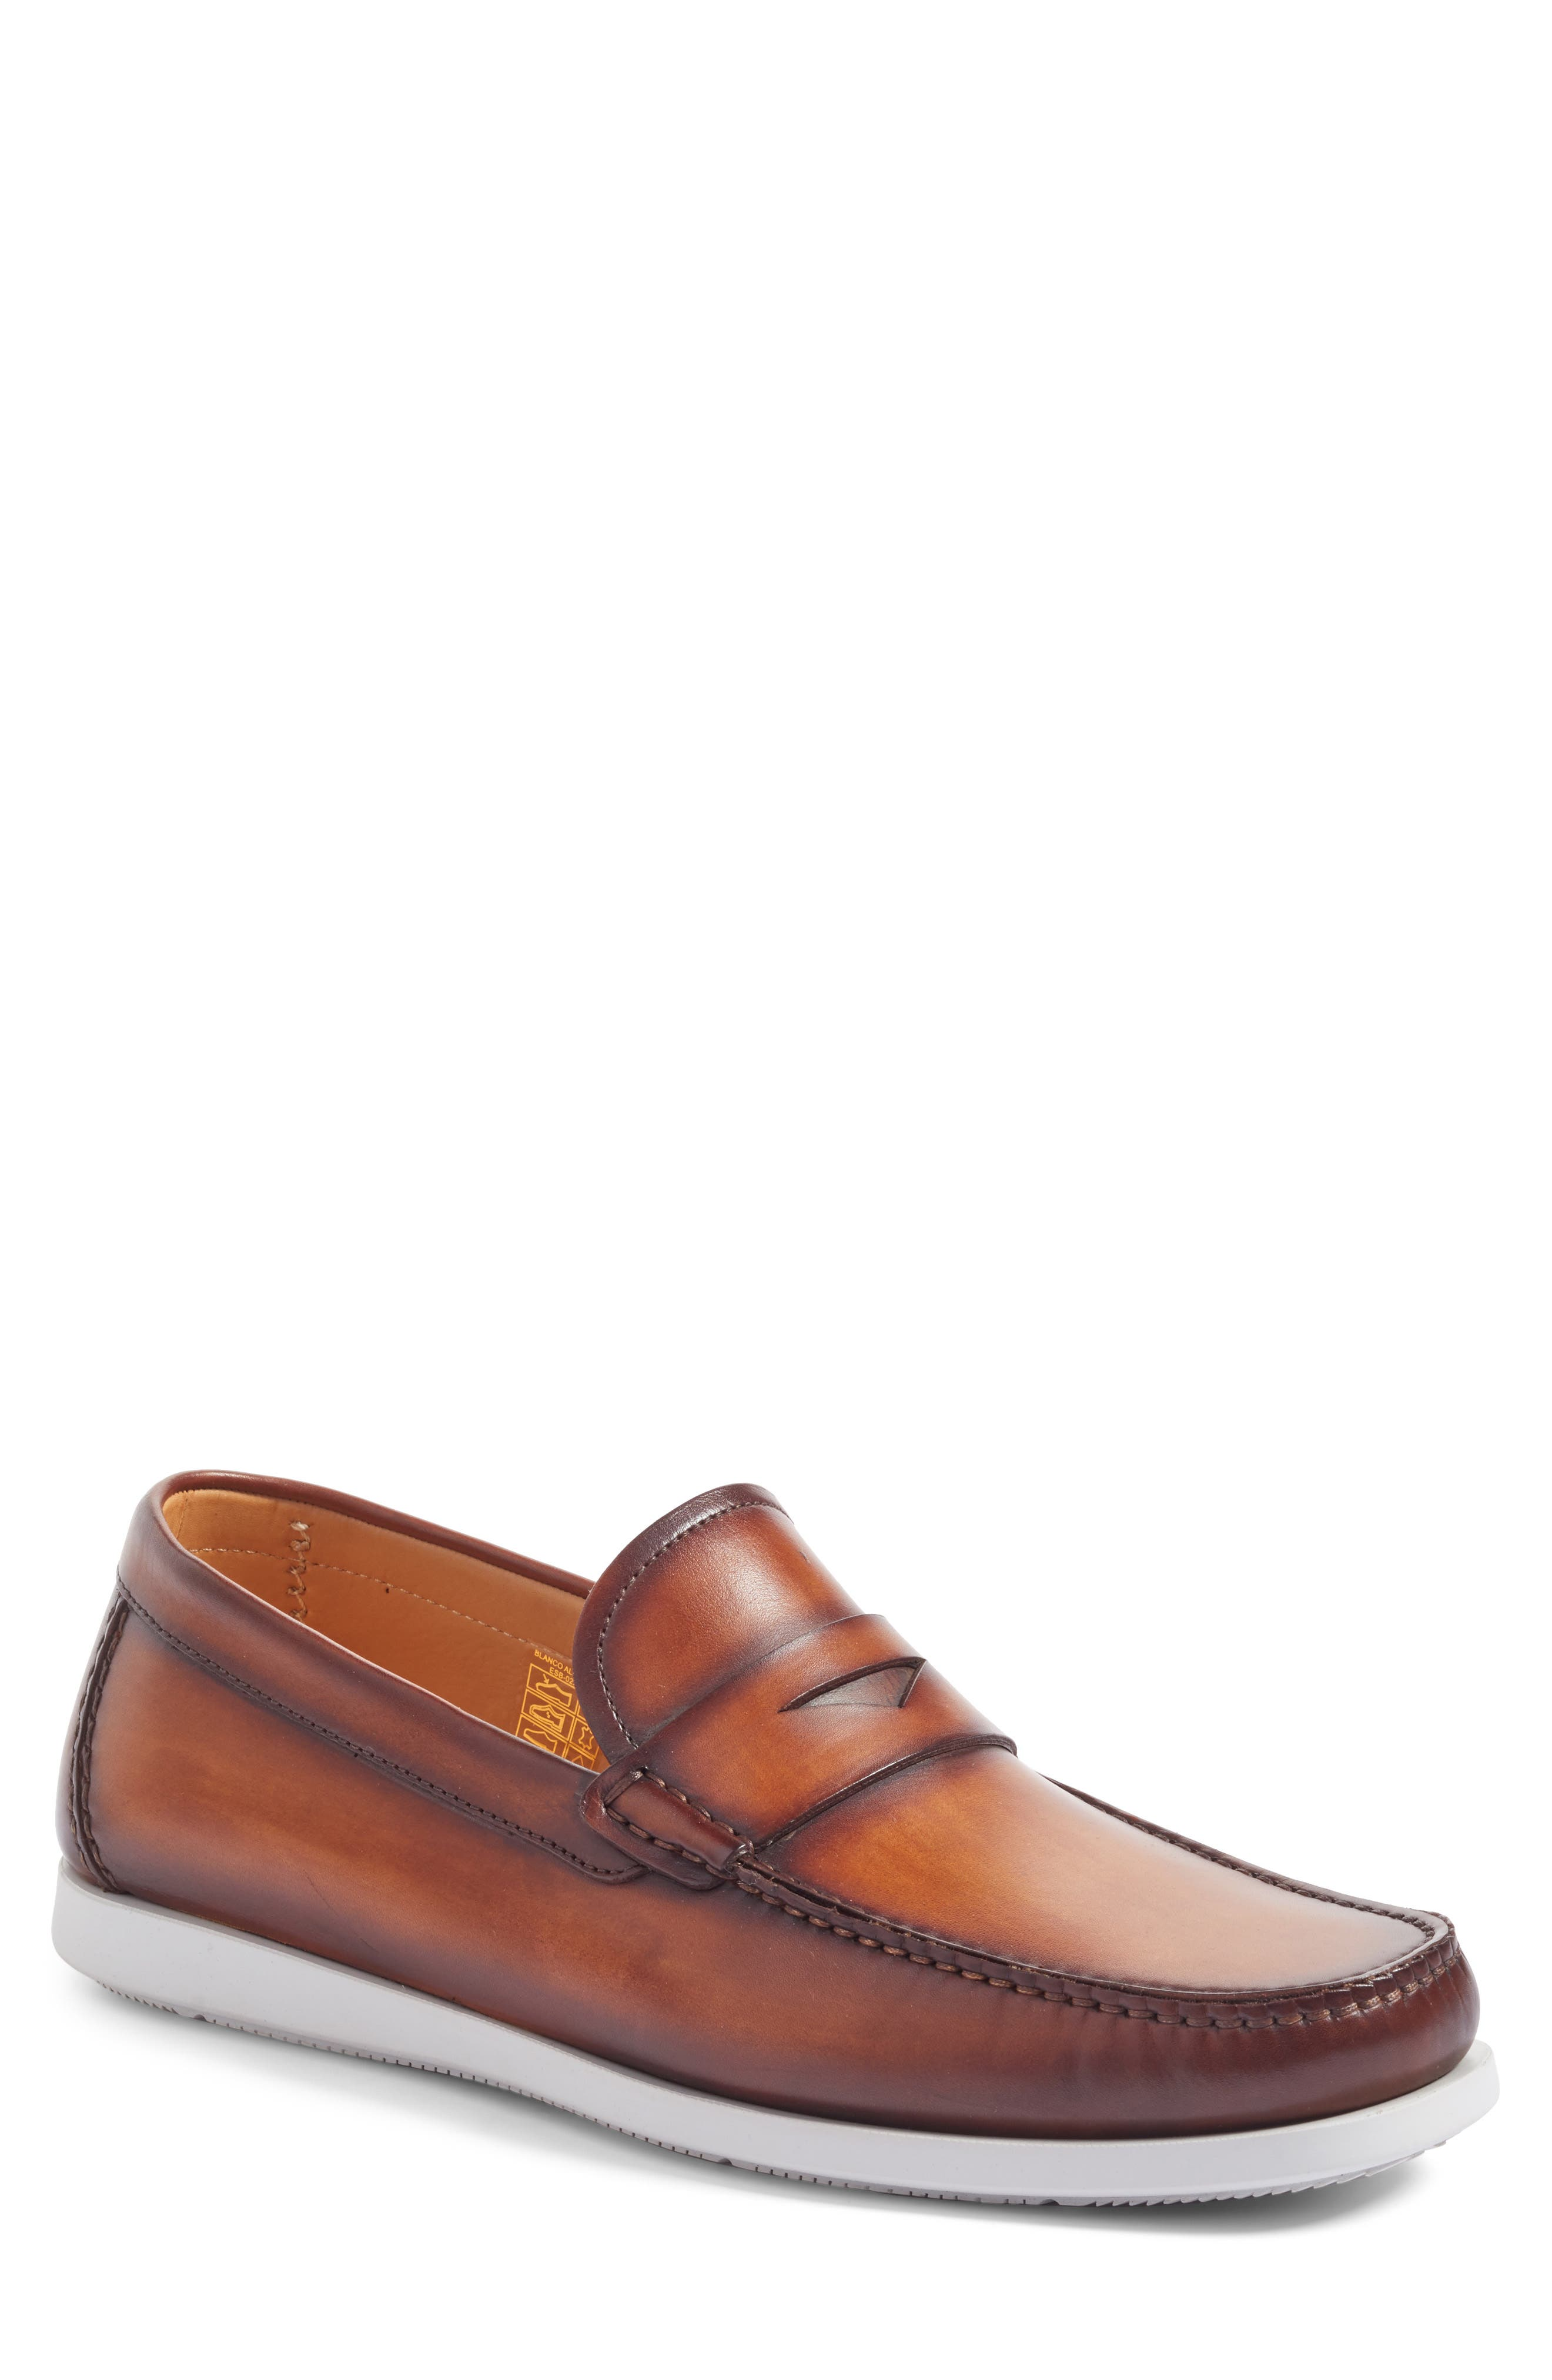 Laguna Penny Loafer,                             Main thumbnail 1, color,                             Mid-Brown Leather